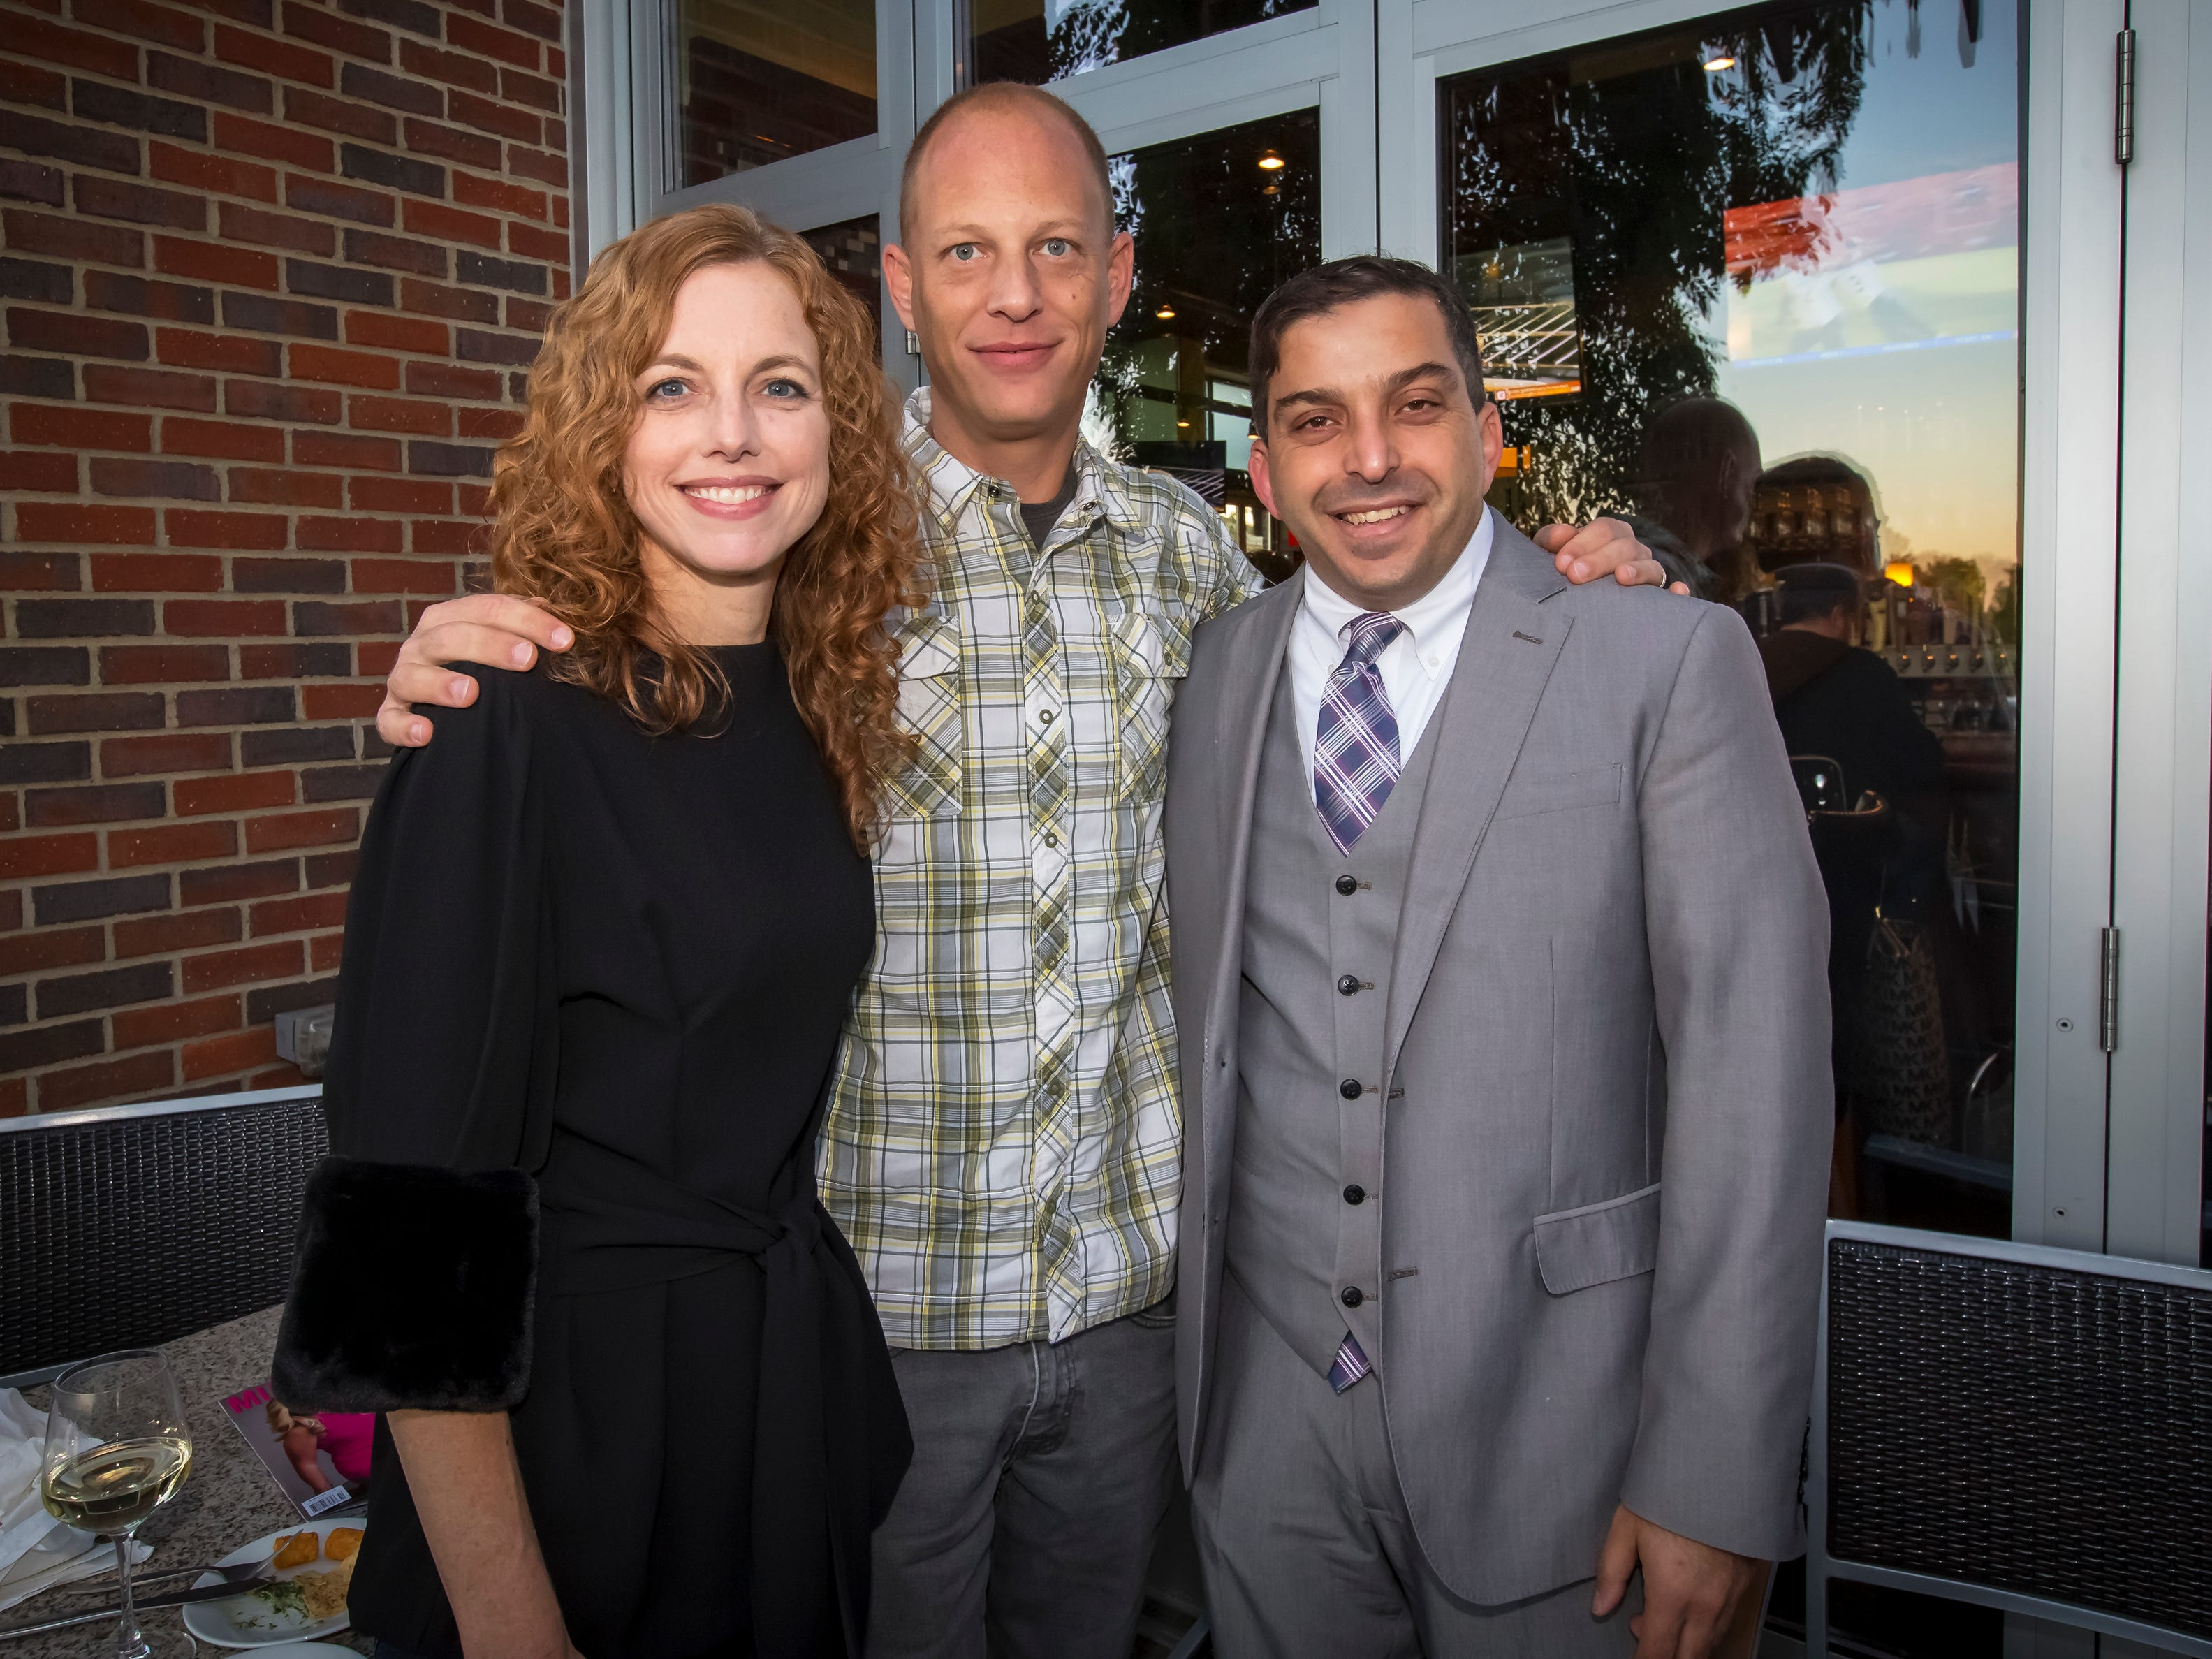 Laura and Andy Harper along with Abdou Kattih at the Murfreesboro Magazine Most Beautiful People event held at Bar Louie.photo by Jim Davis/for the DNJ